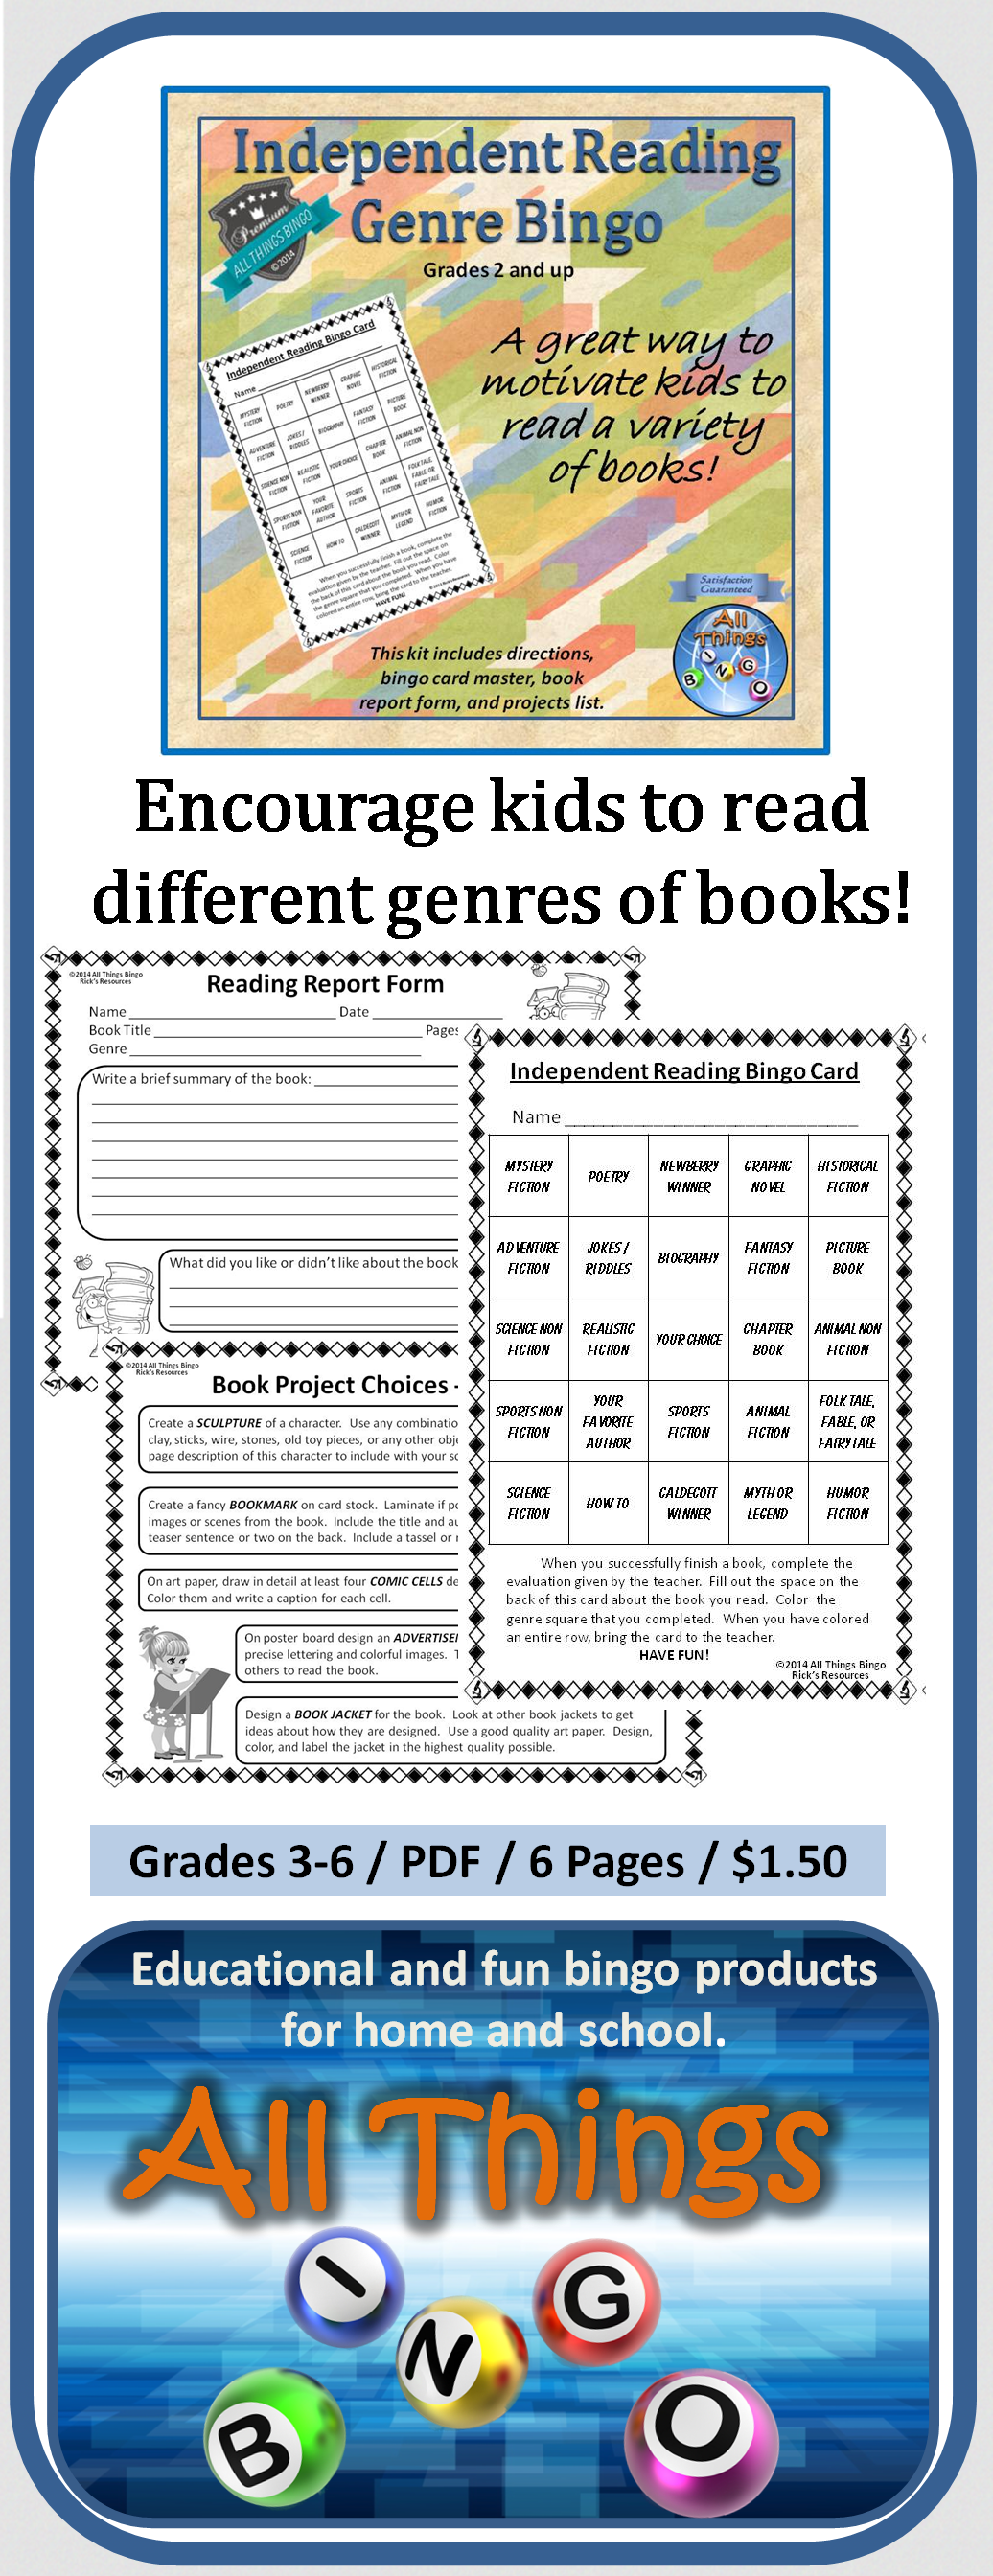 The Independent Reading Bingo Activity Was Designed To